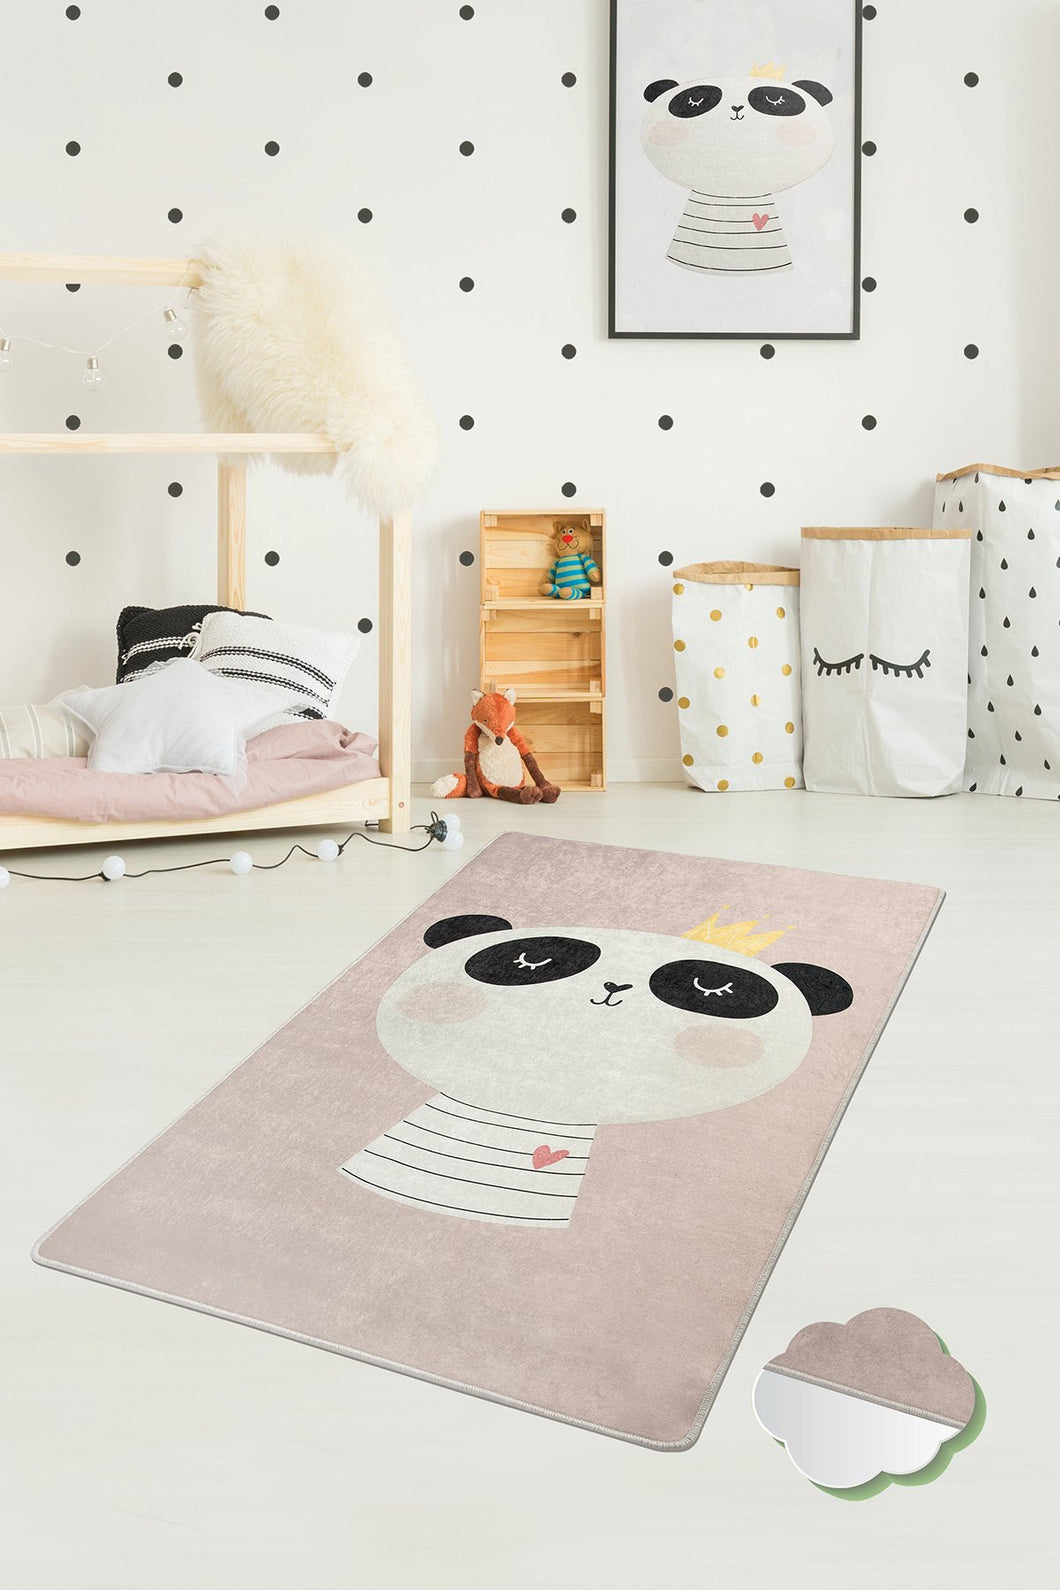 Antdecor King Panda Rugs for kids Highway  3'x 5' 39